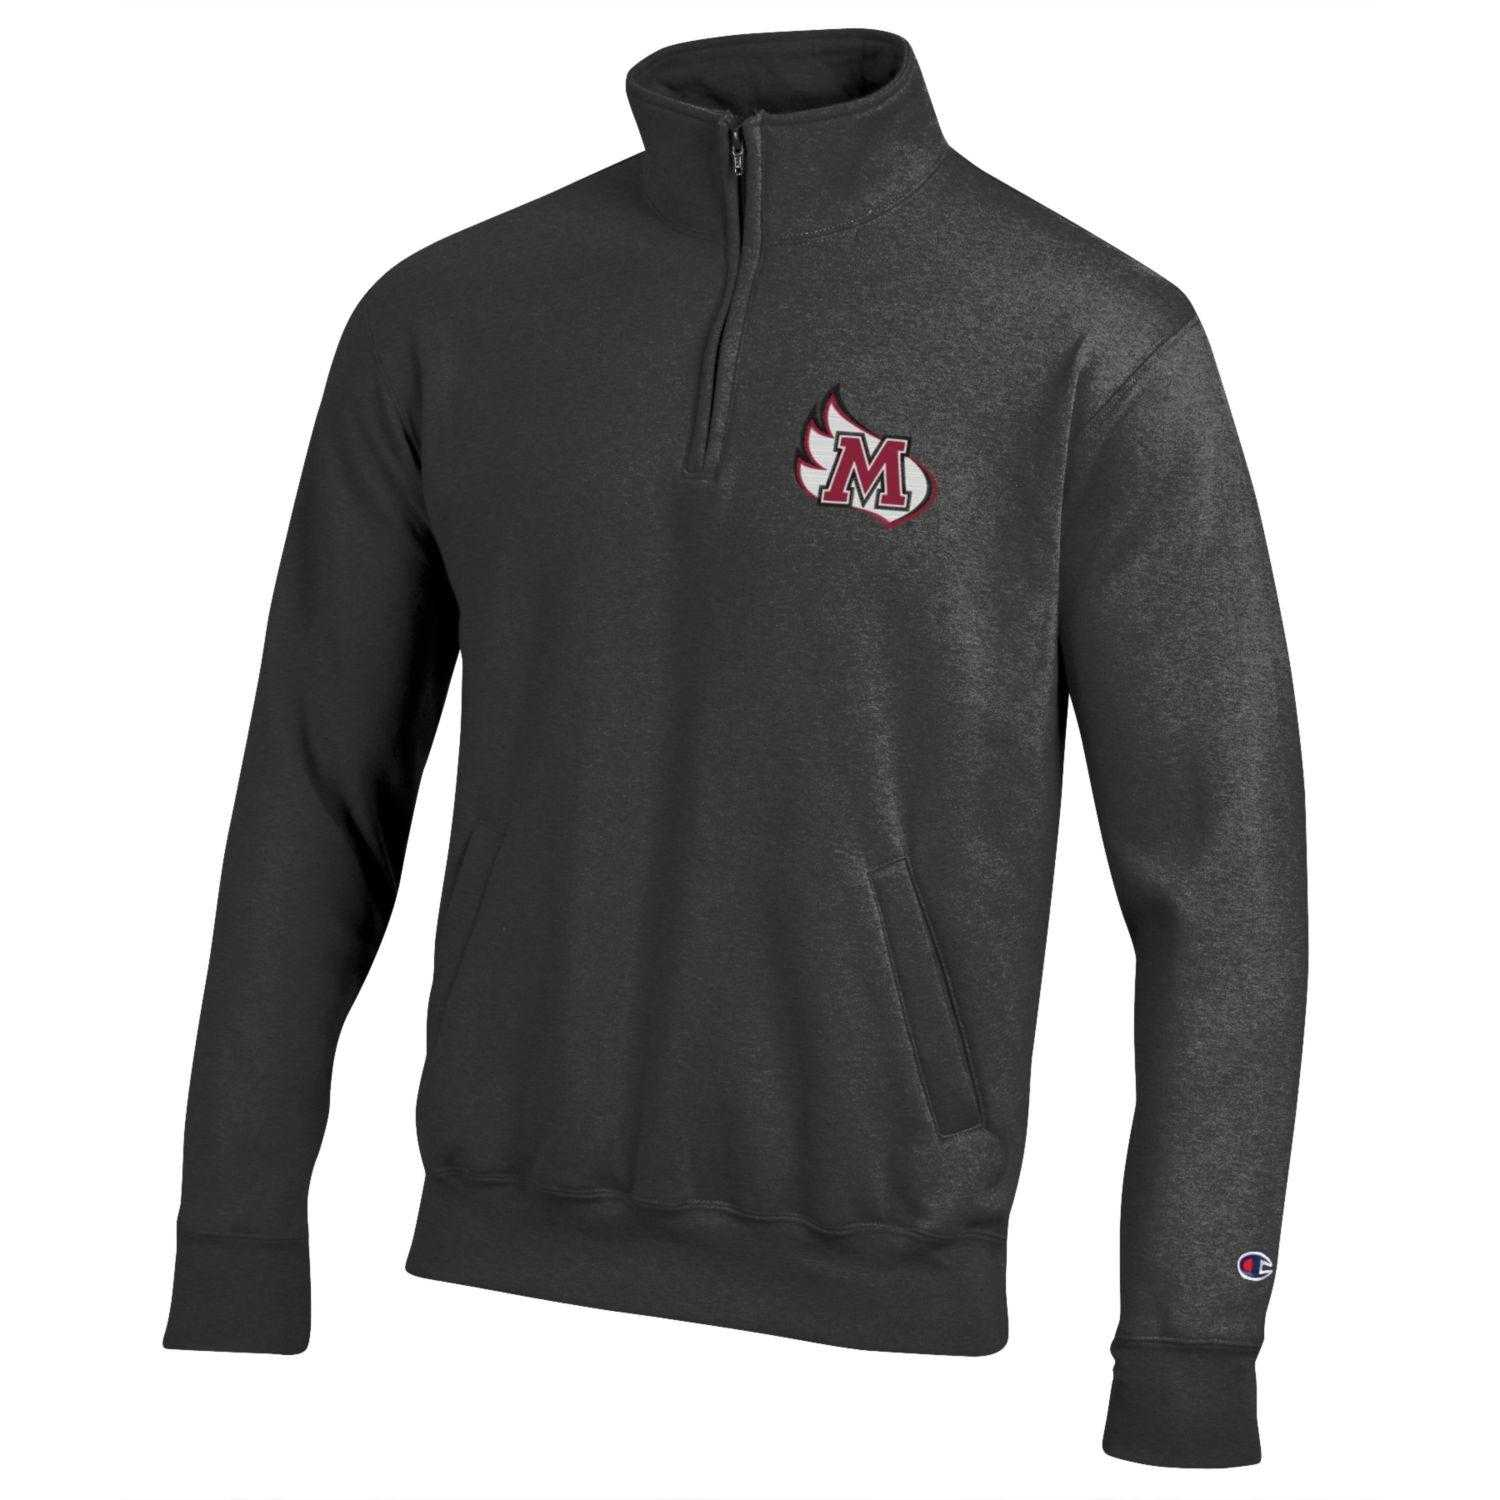 Image for the Eco Powerblend 1/4 Zip, Granite Heather product